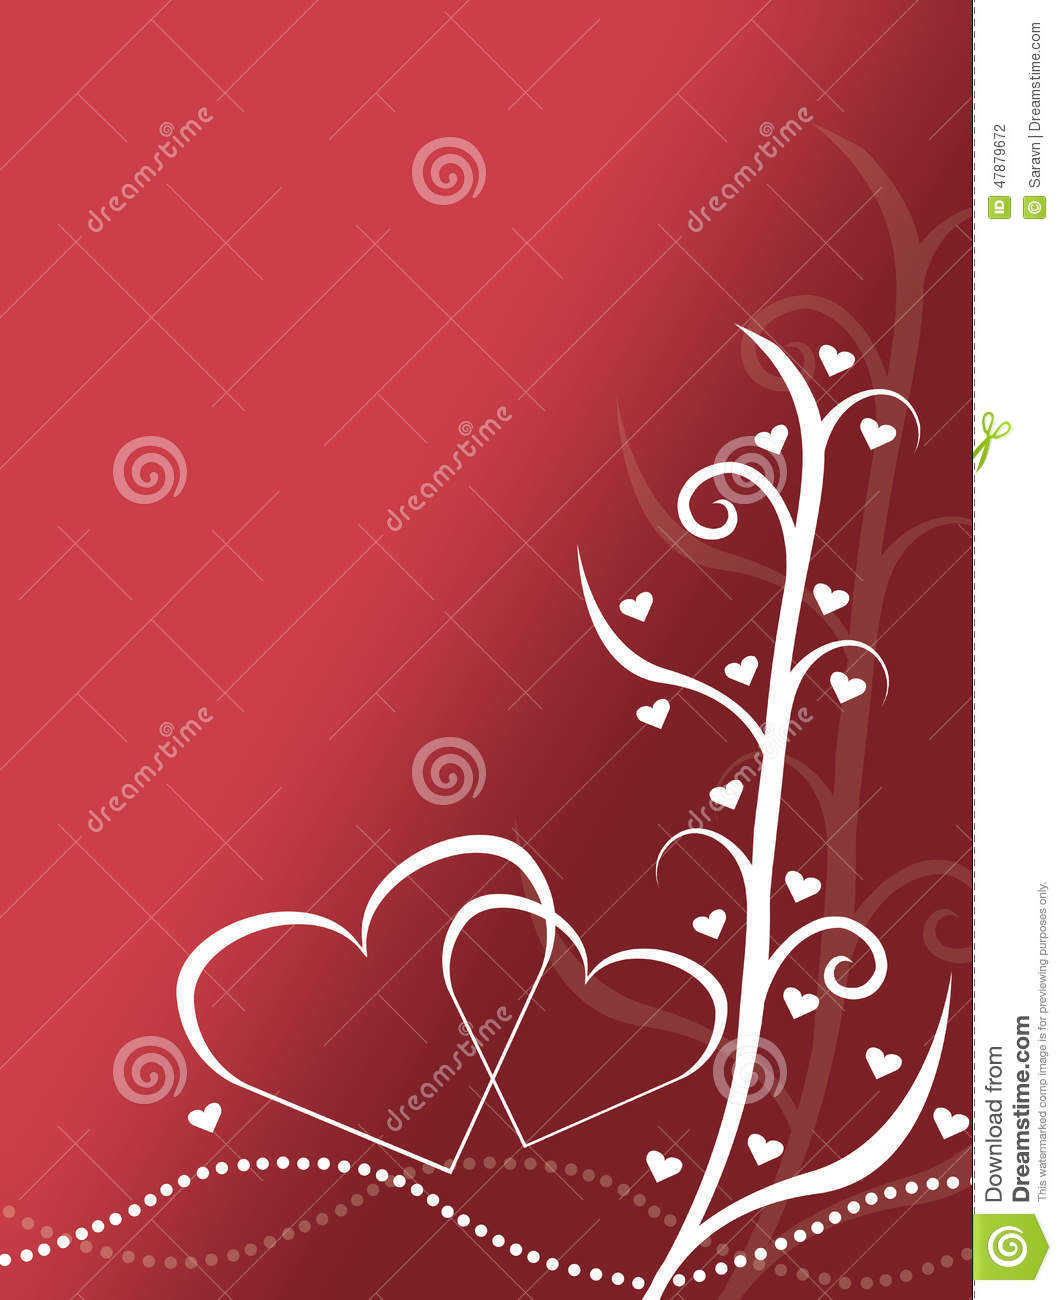 Abstract red and white valentines day card design for Valentines day card design